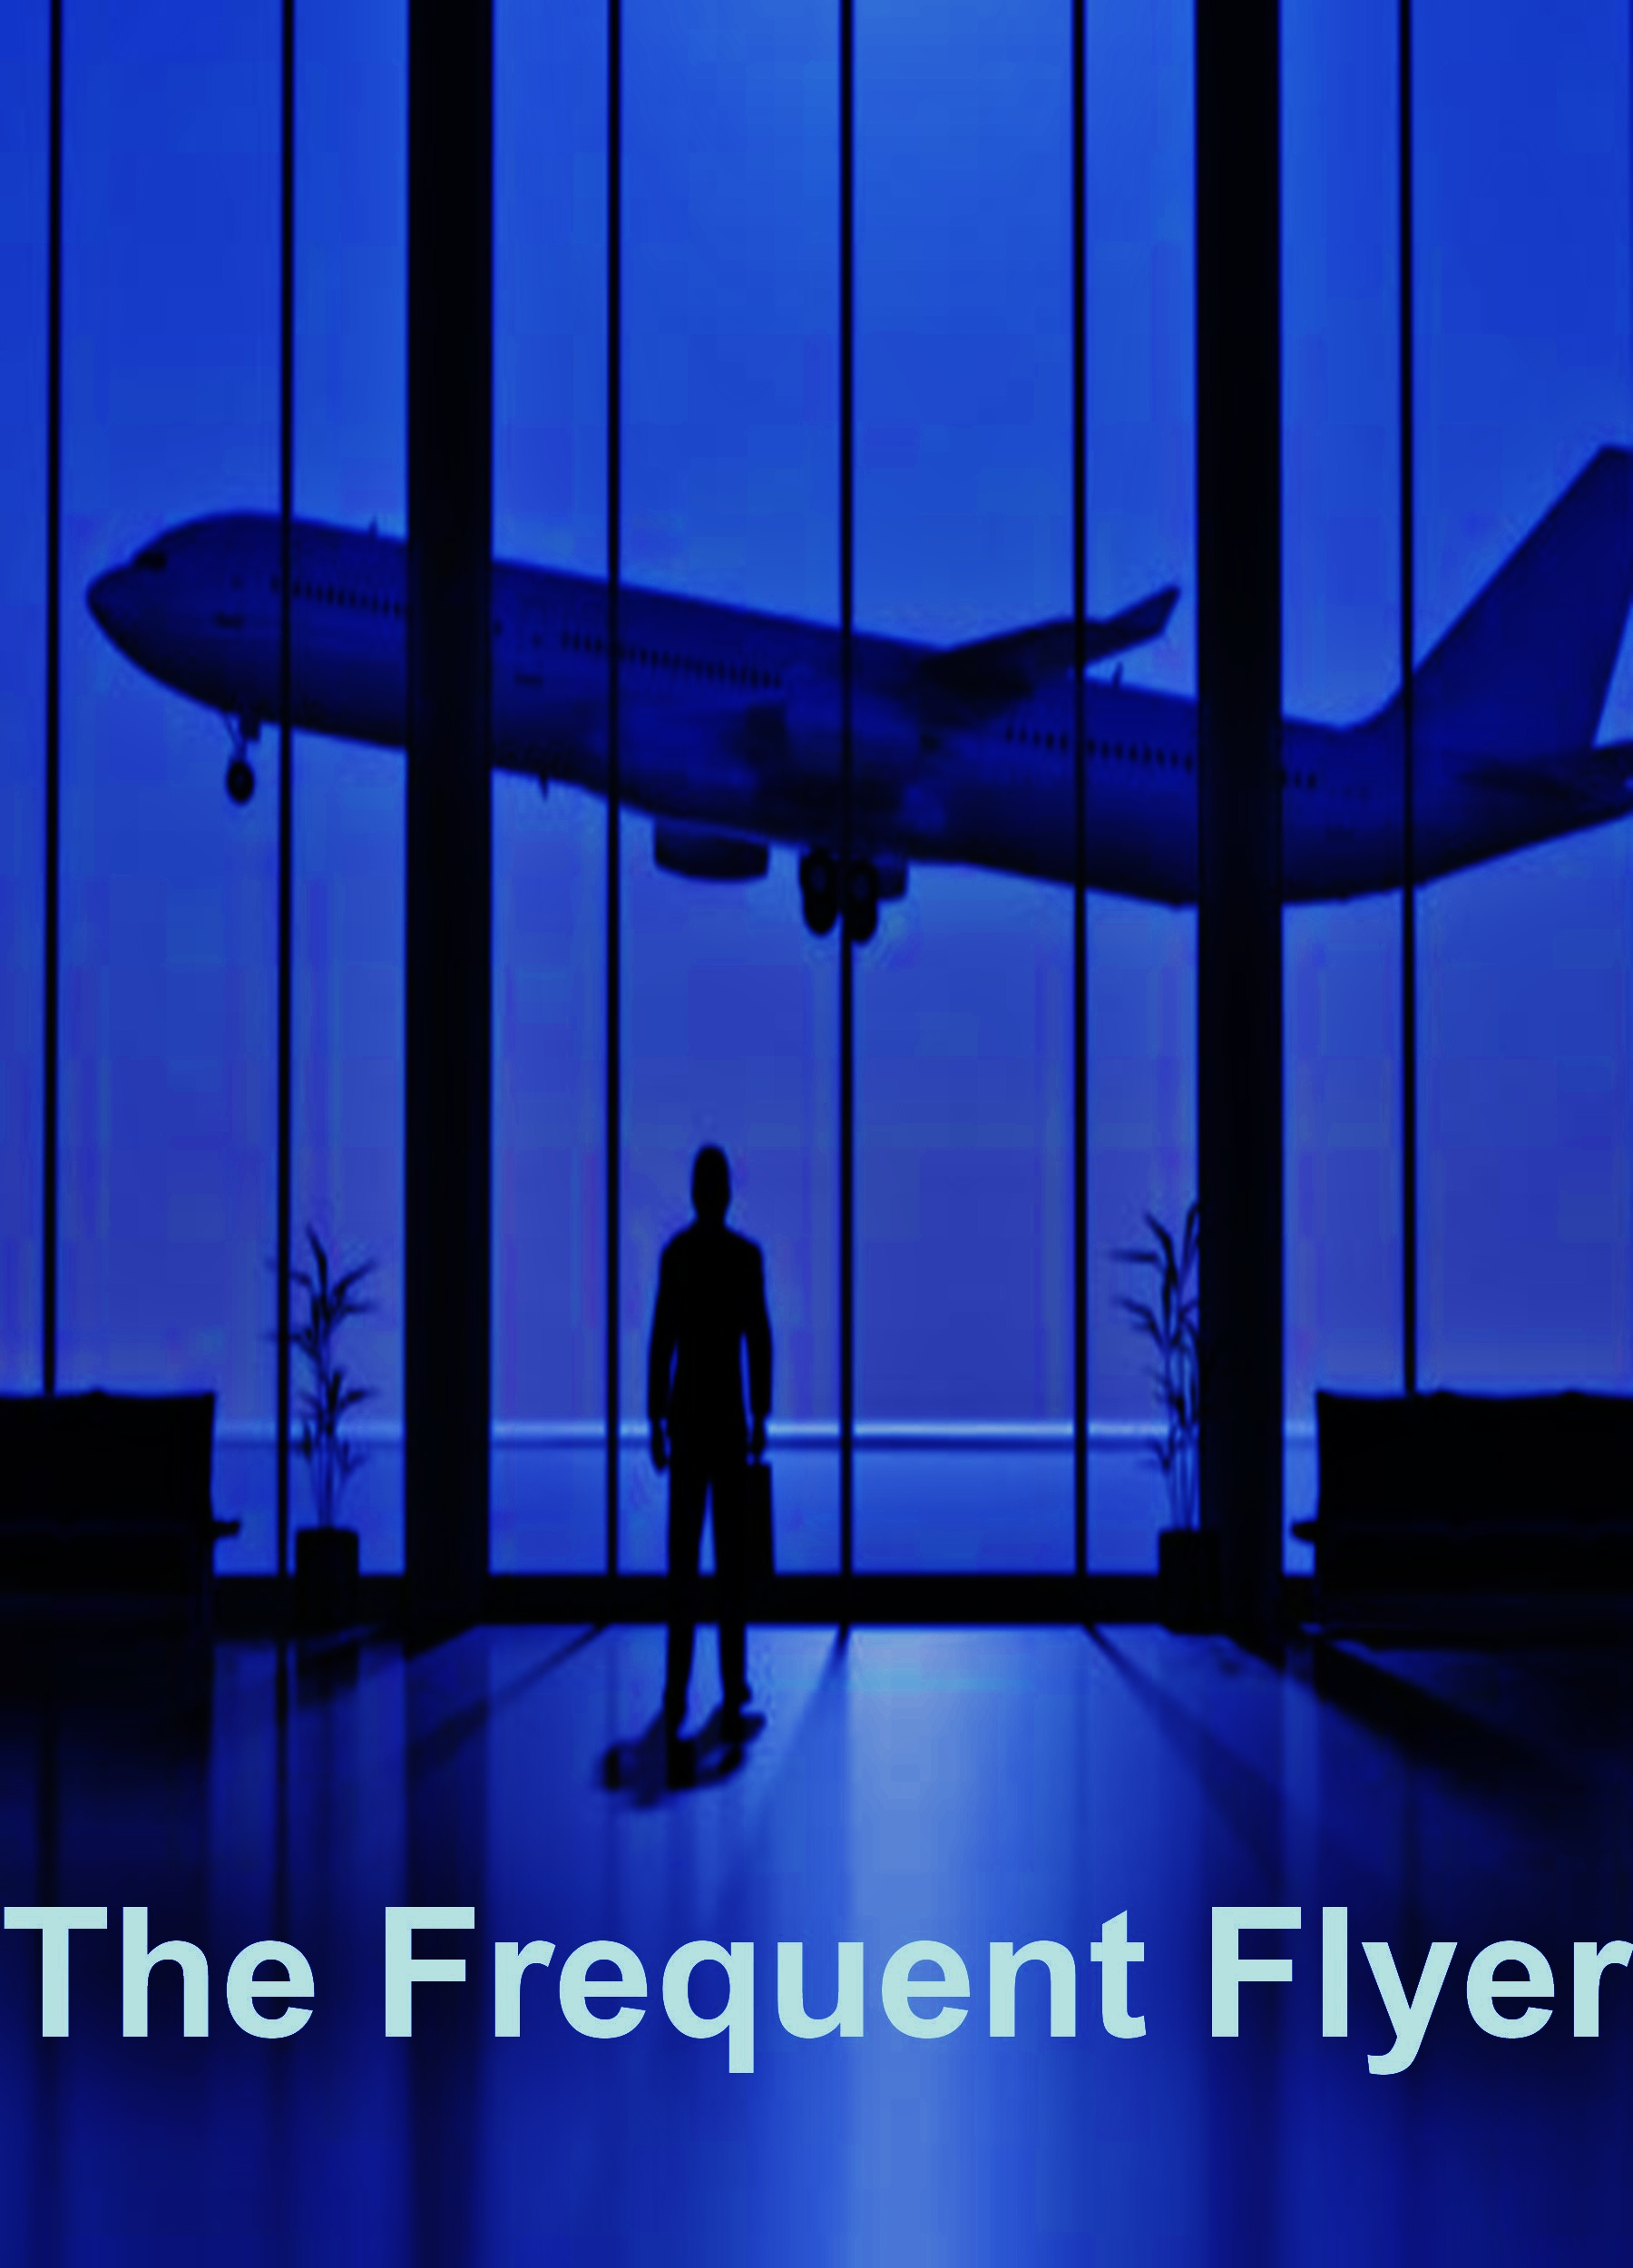 The Frequent Flyer (for fans of books as diverse as The Lovely Bones, Life of Pi, The Great Gatsby, Haruki Murakami, Cloud Atlas, The Alchemist, Waiting for Godot, The Time Traveler's Wife, Herman Hesse)